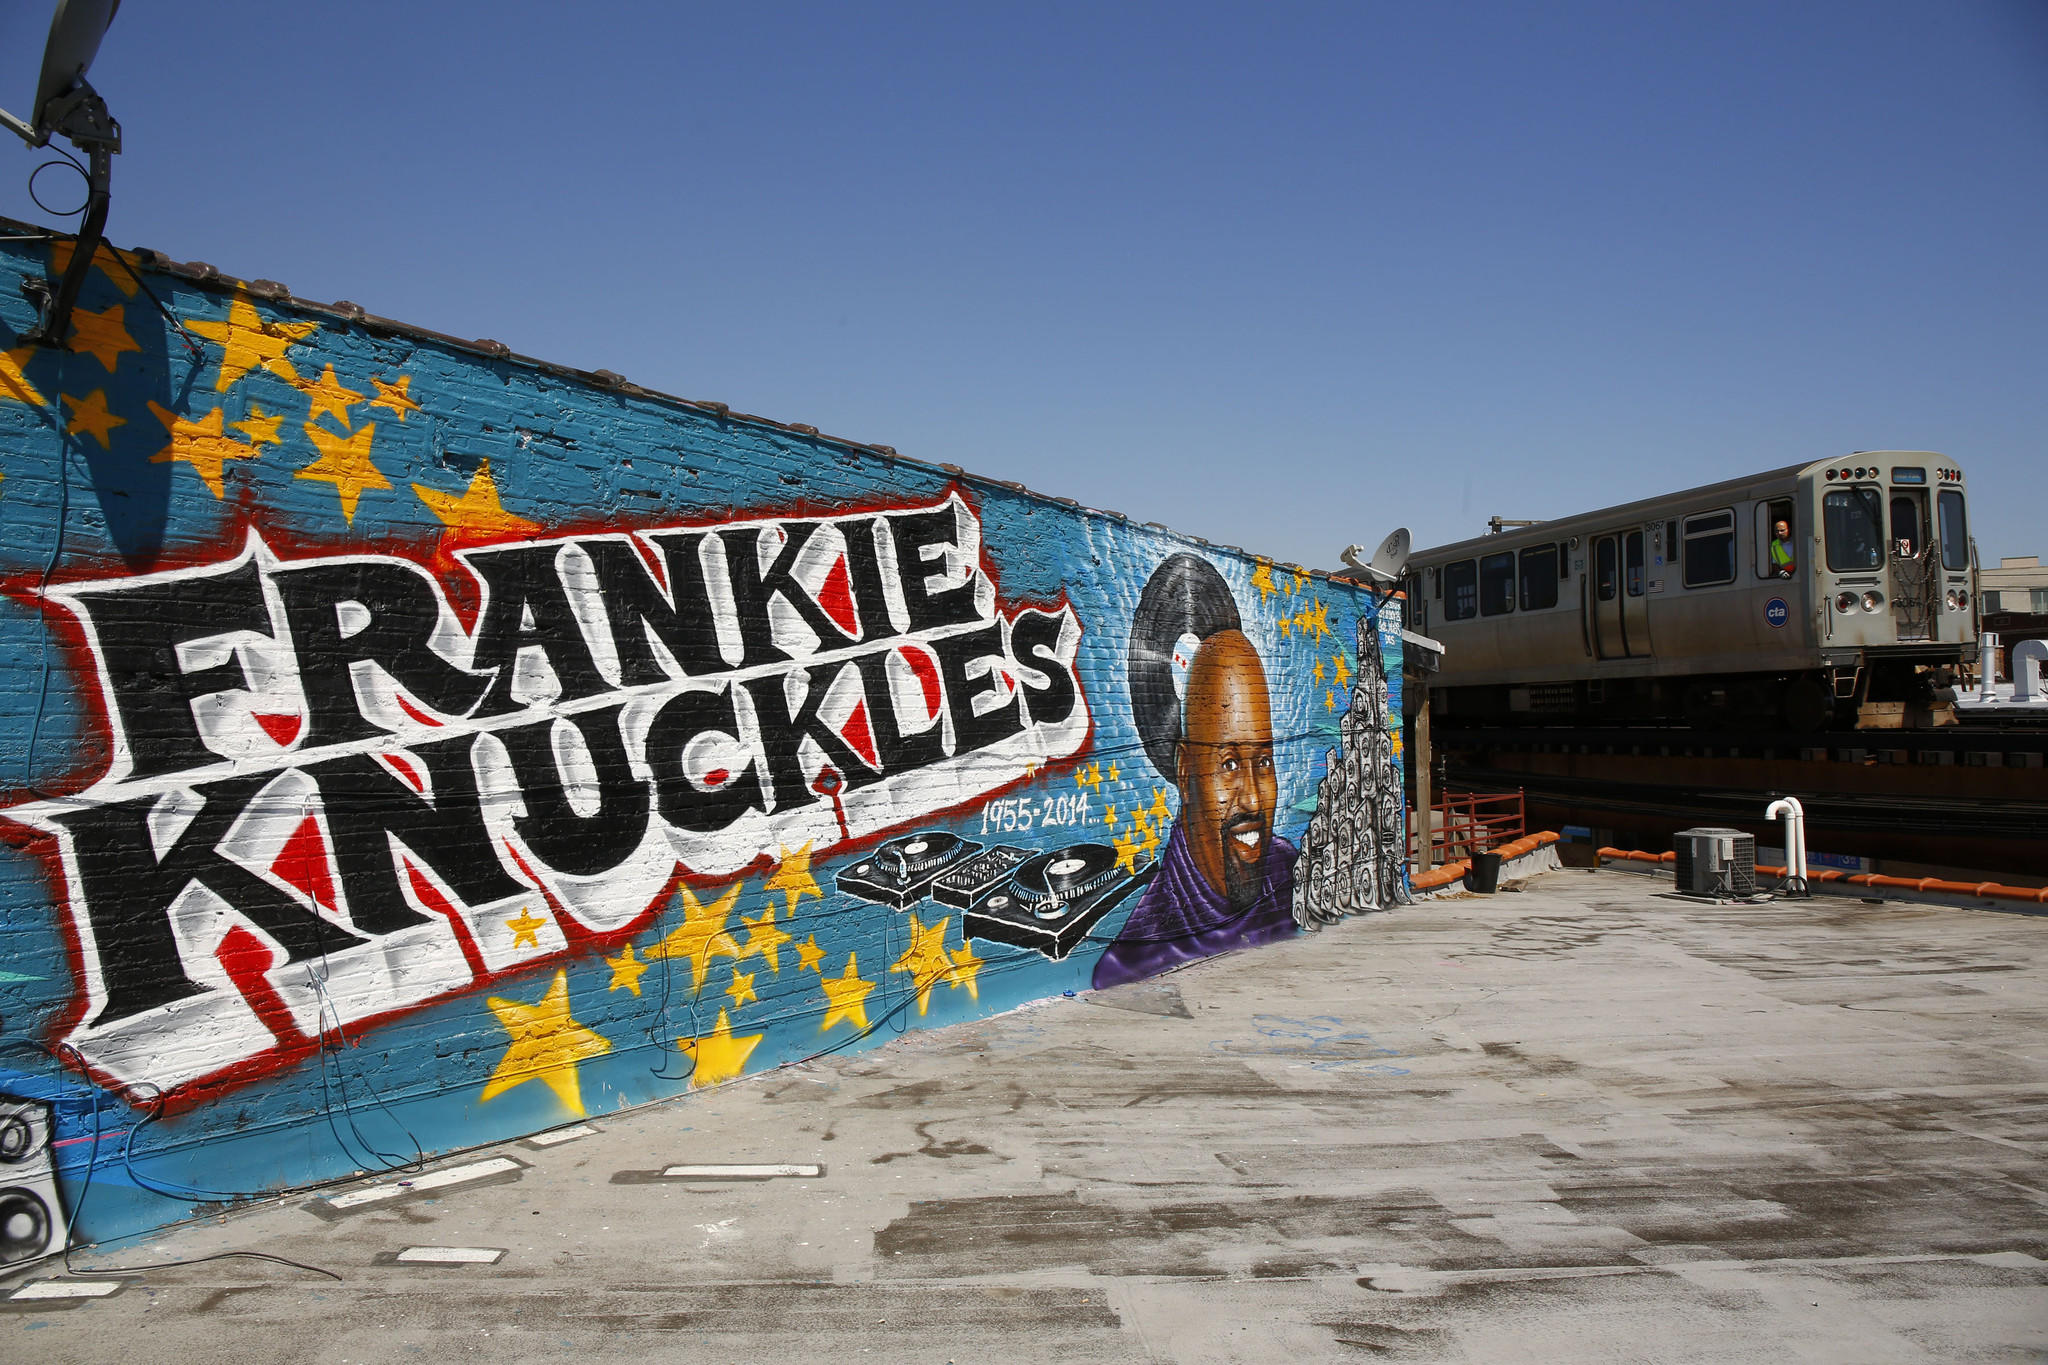 A mural honoring music legend Frankie Knuckles is displayed along the CTA Blue Line in the 2900 block of West Fullerton Avenue in the Logan Square neighborhood.